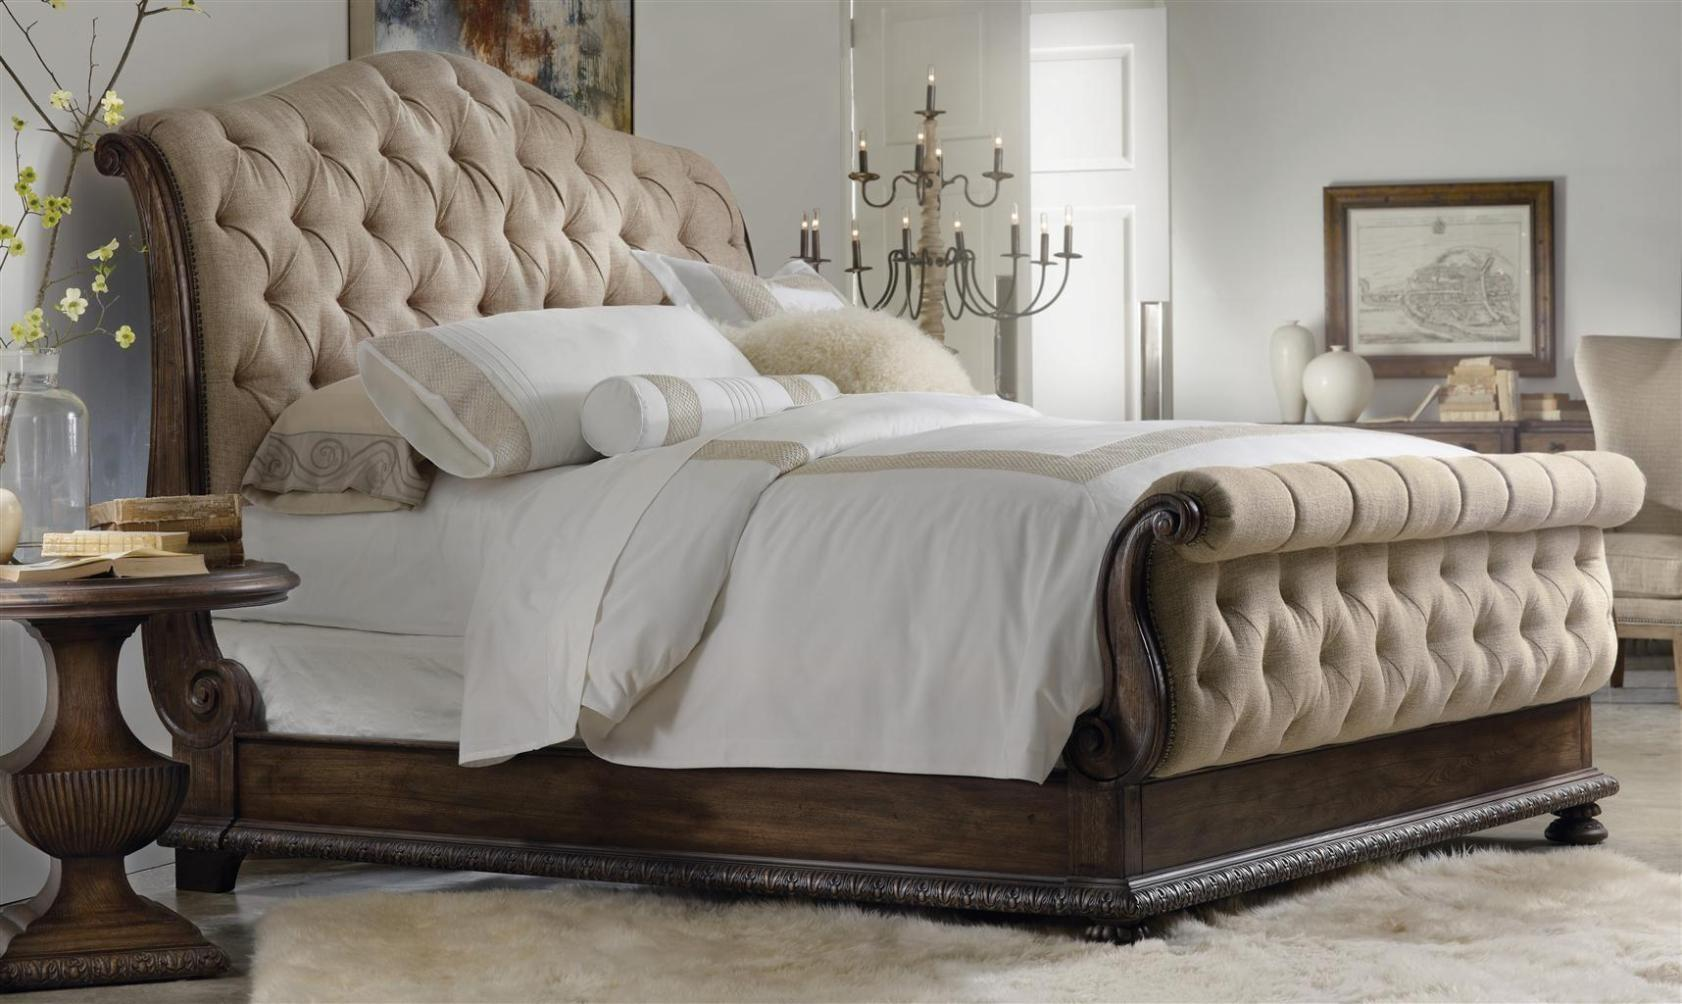 Victiroan Style Bed Made Wooden Brown Color